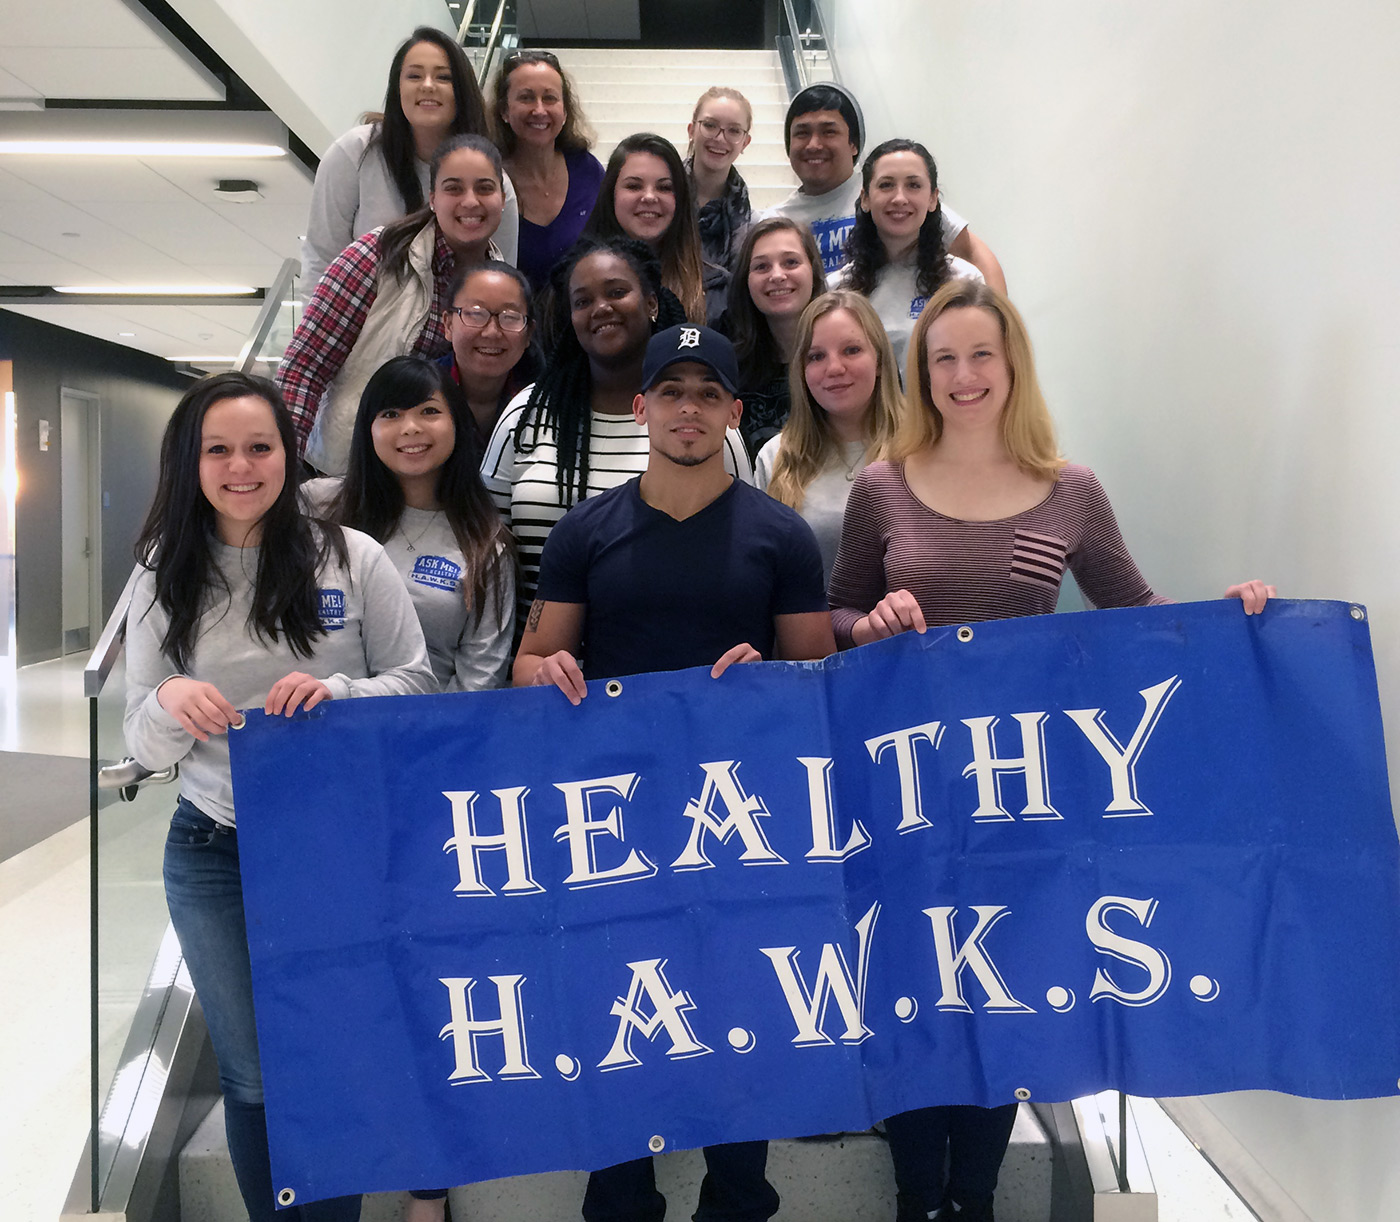 UMass Lowell Healthy HAWKS students pose for a group photo with a banner.